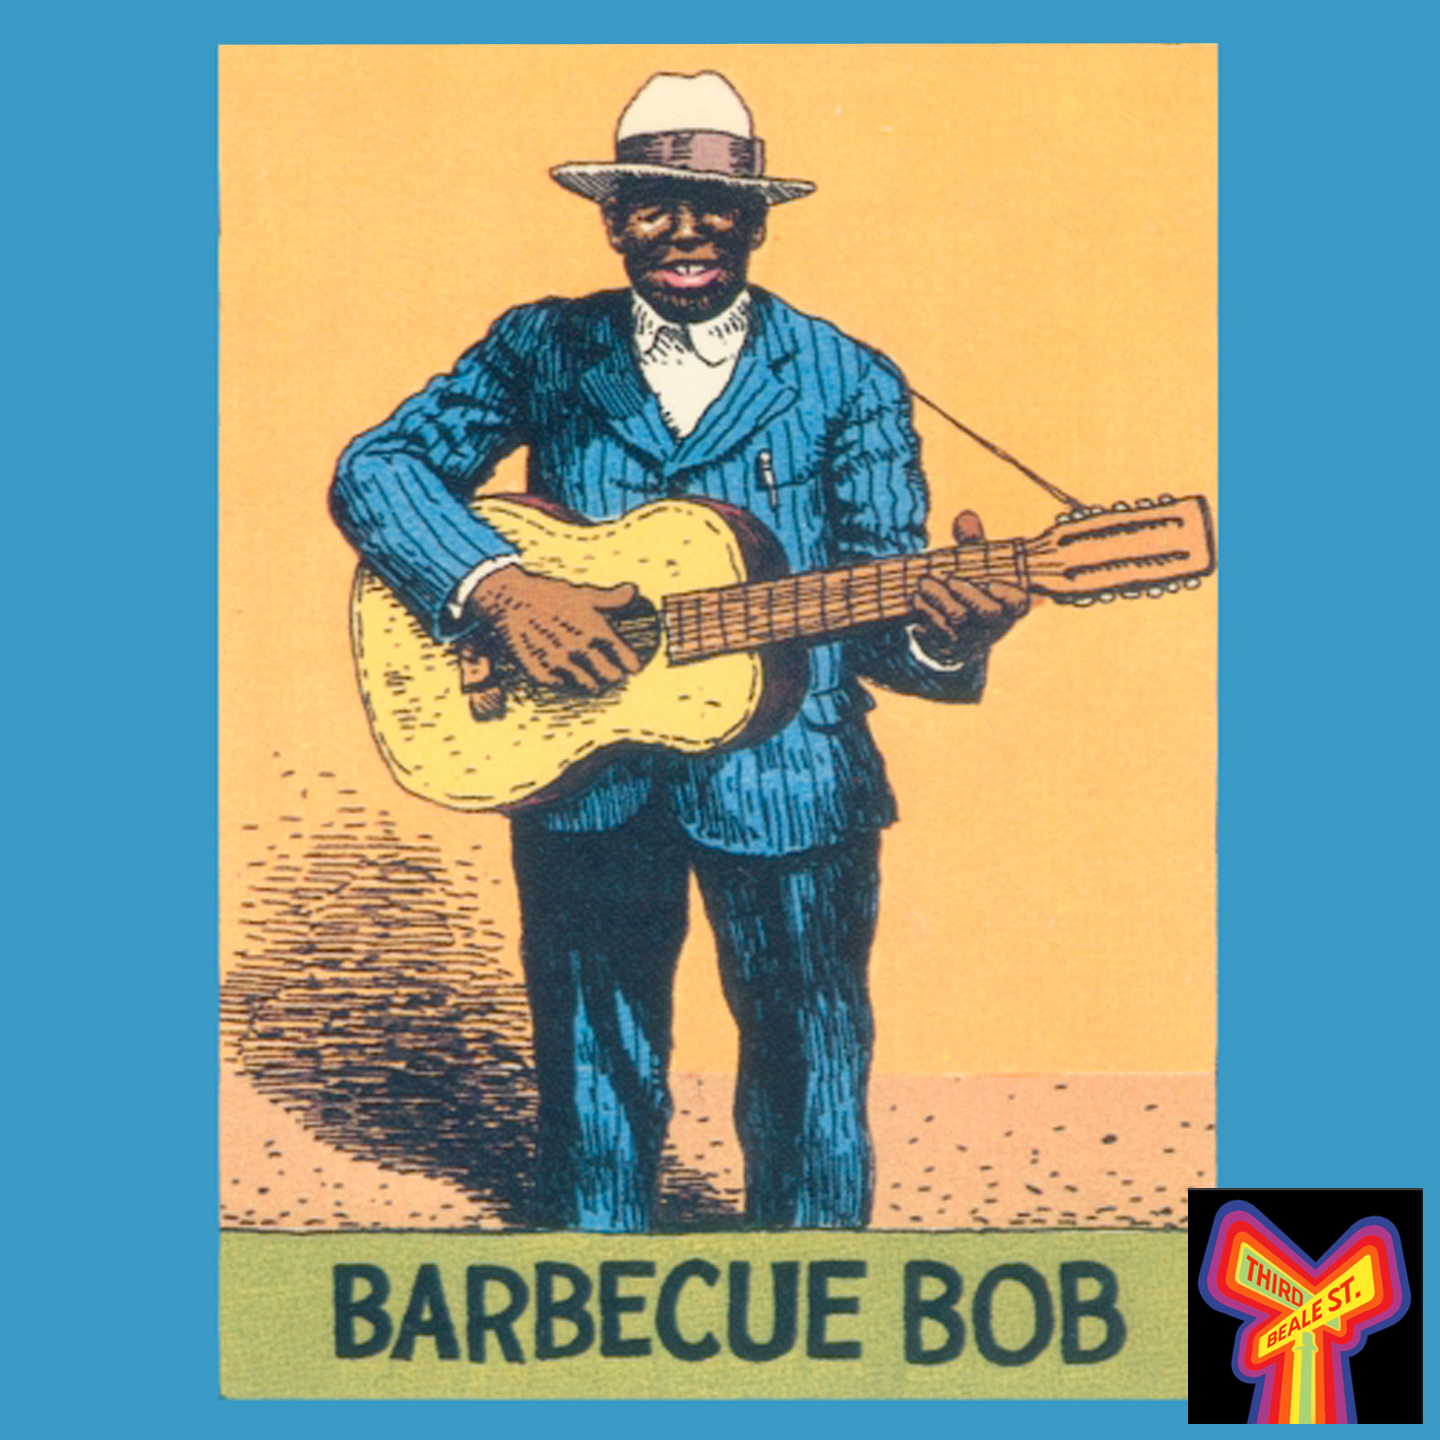 Caption: Like fellow Atlanta Bluesman Blind Willie McTell, Barbecue Bob preferred the big open sound of the 12-string guitar. Illustration by R. Crumb.